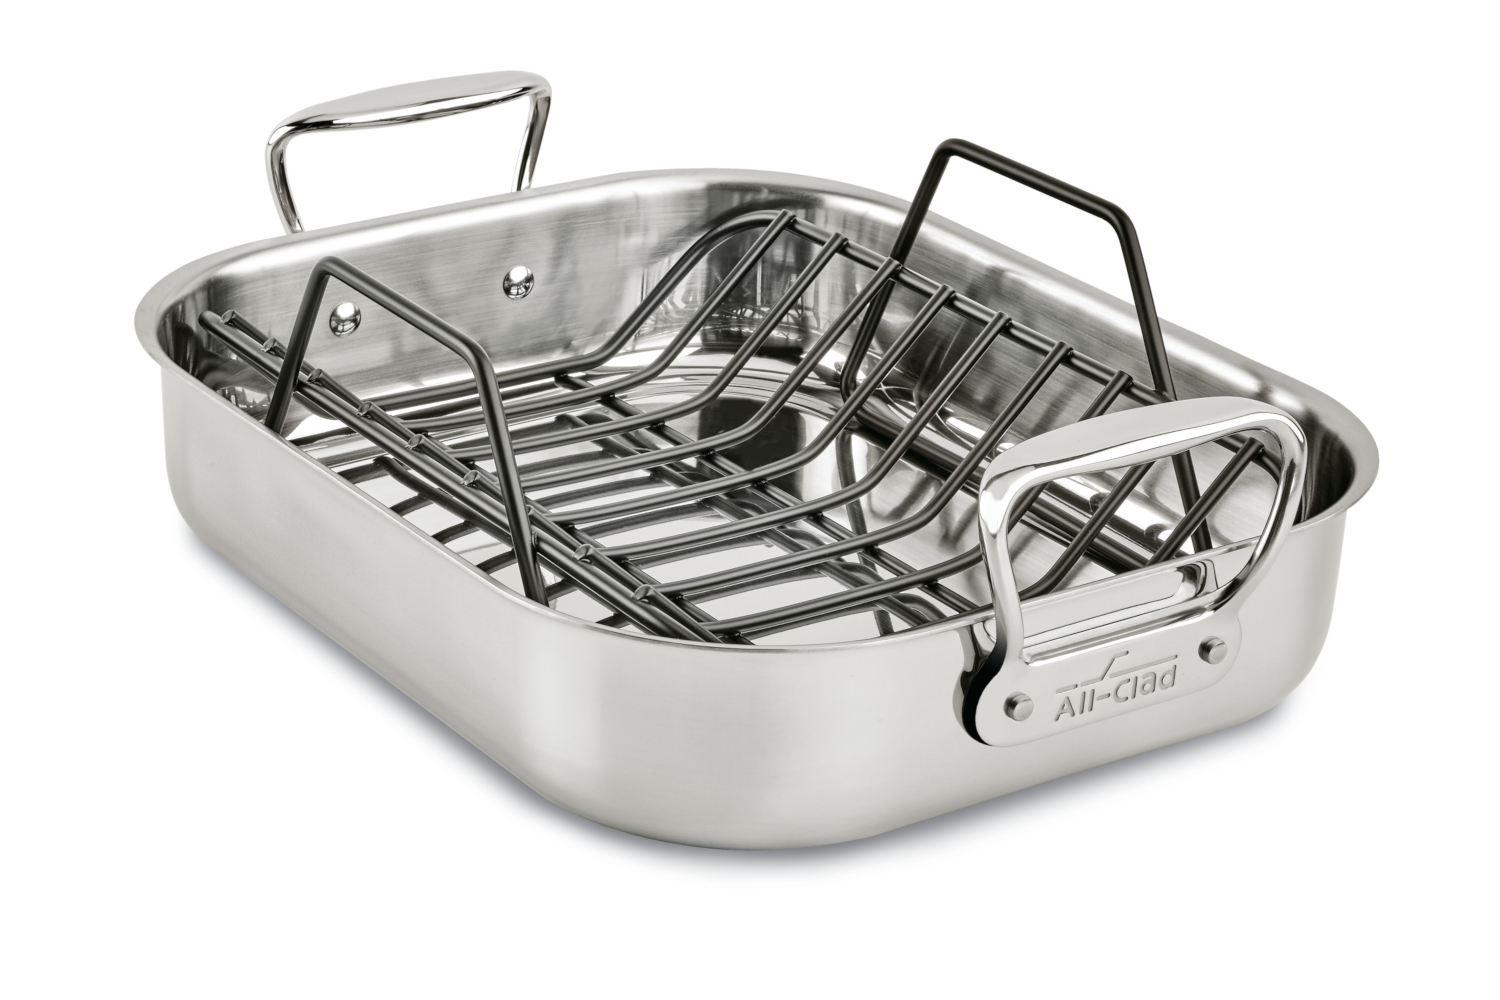 All-Clad Stainless Steel 14 x 11 inch Small Roasting Pan w/Rack